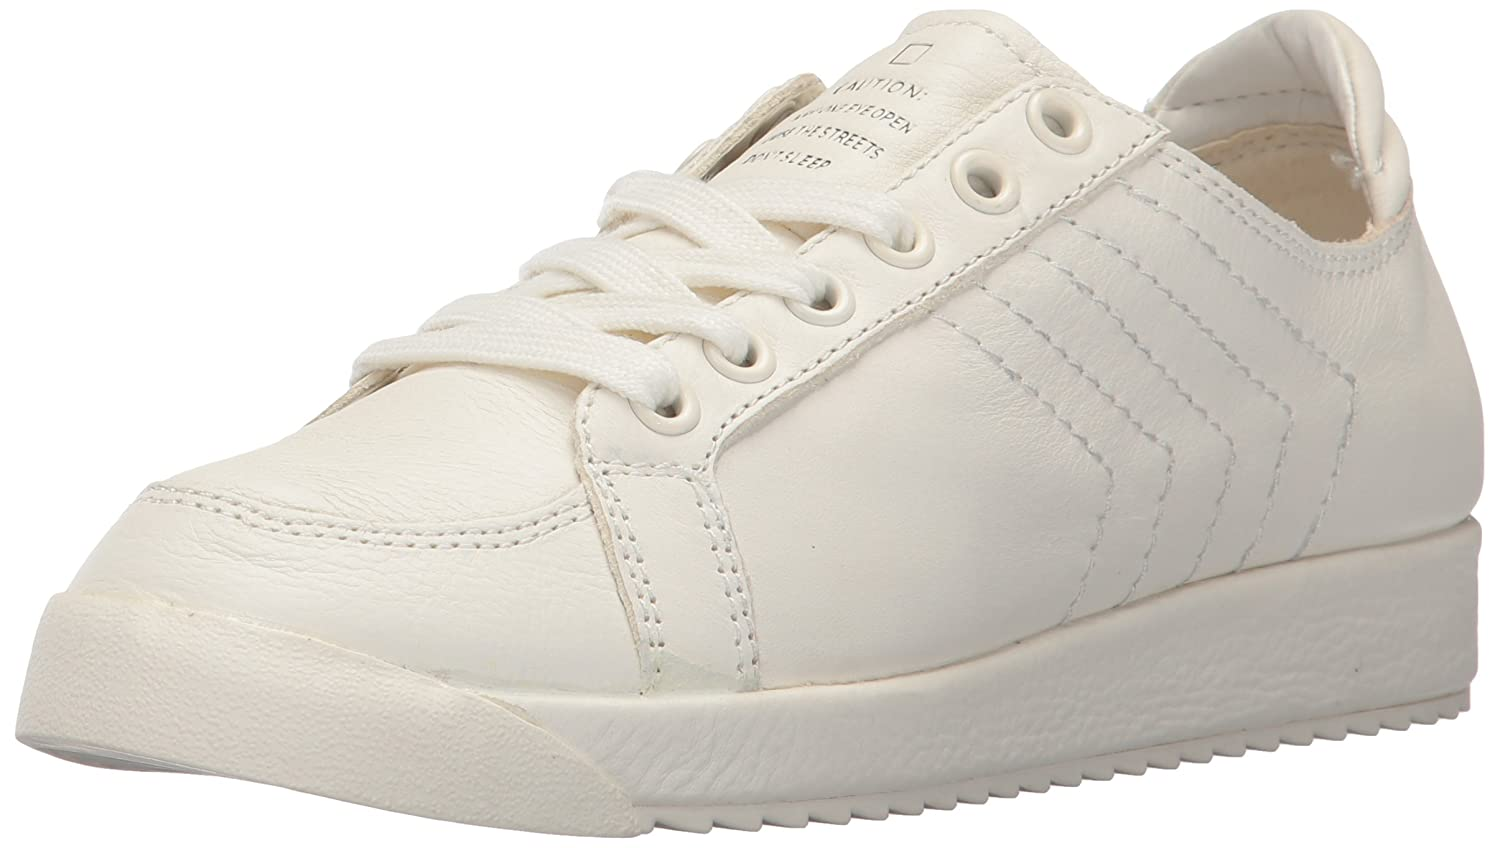 Dolce Vita Women's Sage Sneaker B072QCPGDX 7.5 B(M) US|White Leather